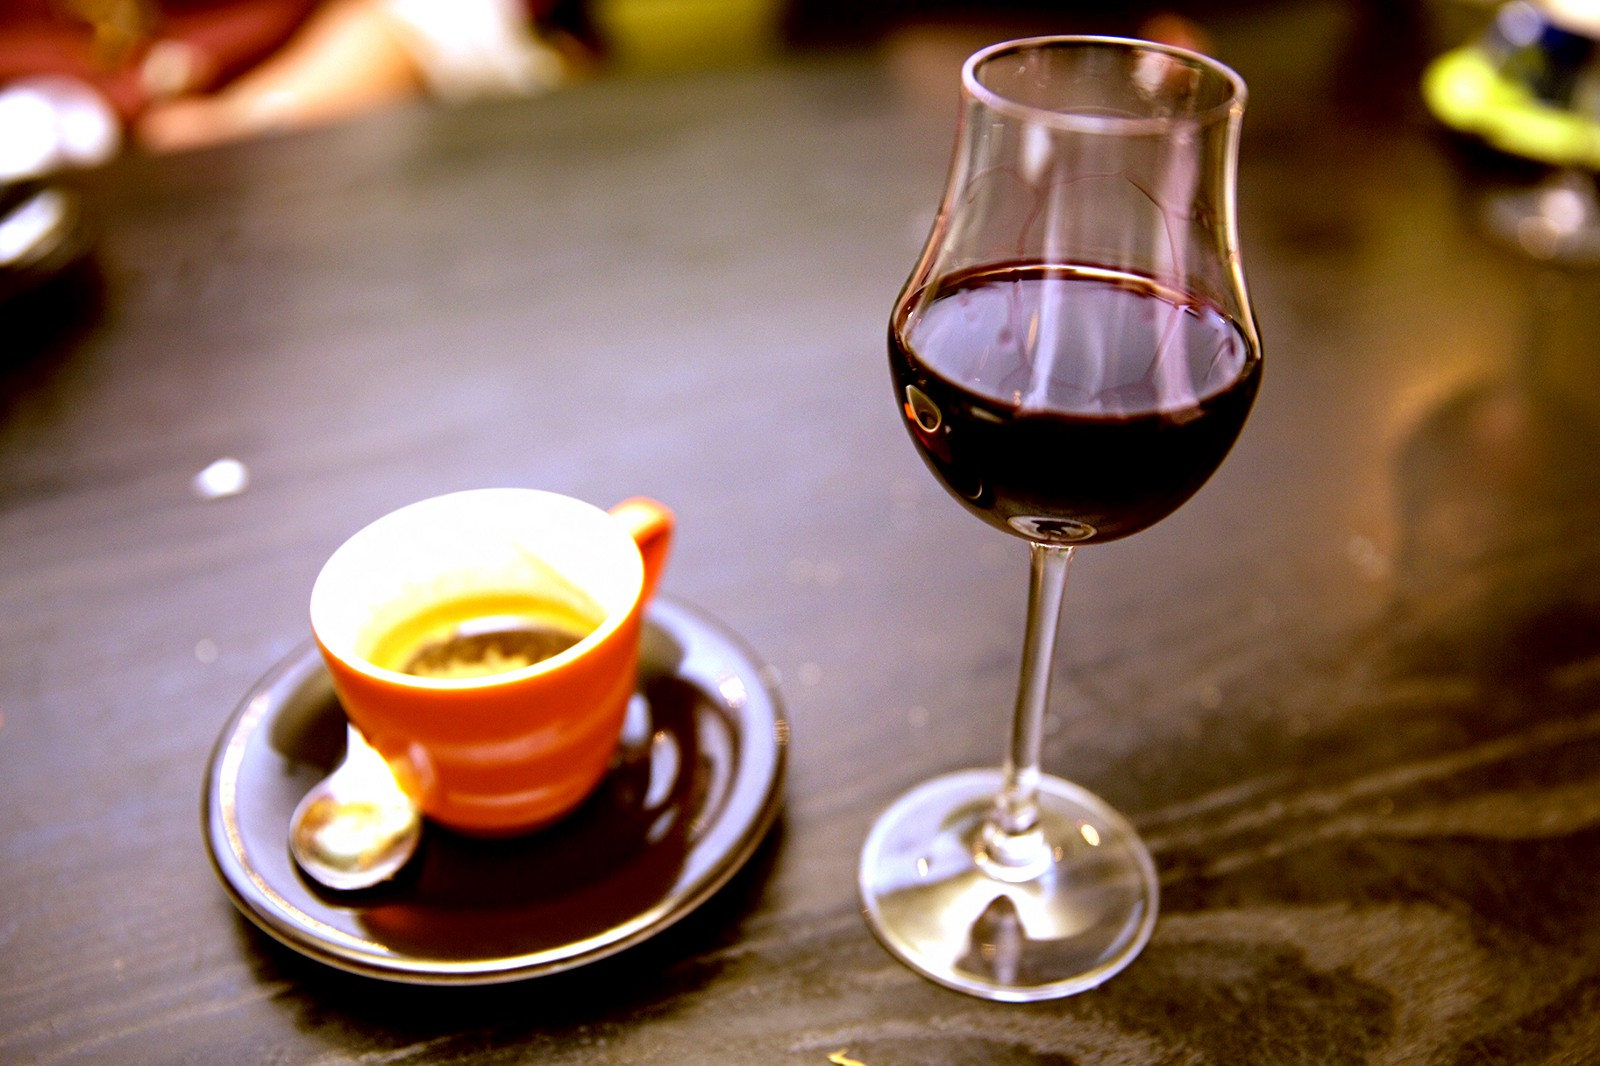 Say cheers with coffee and wine without worrying about your health